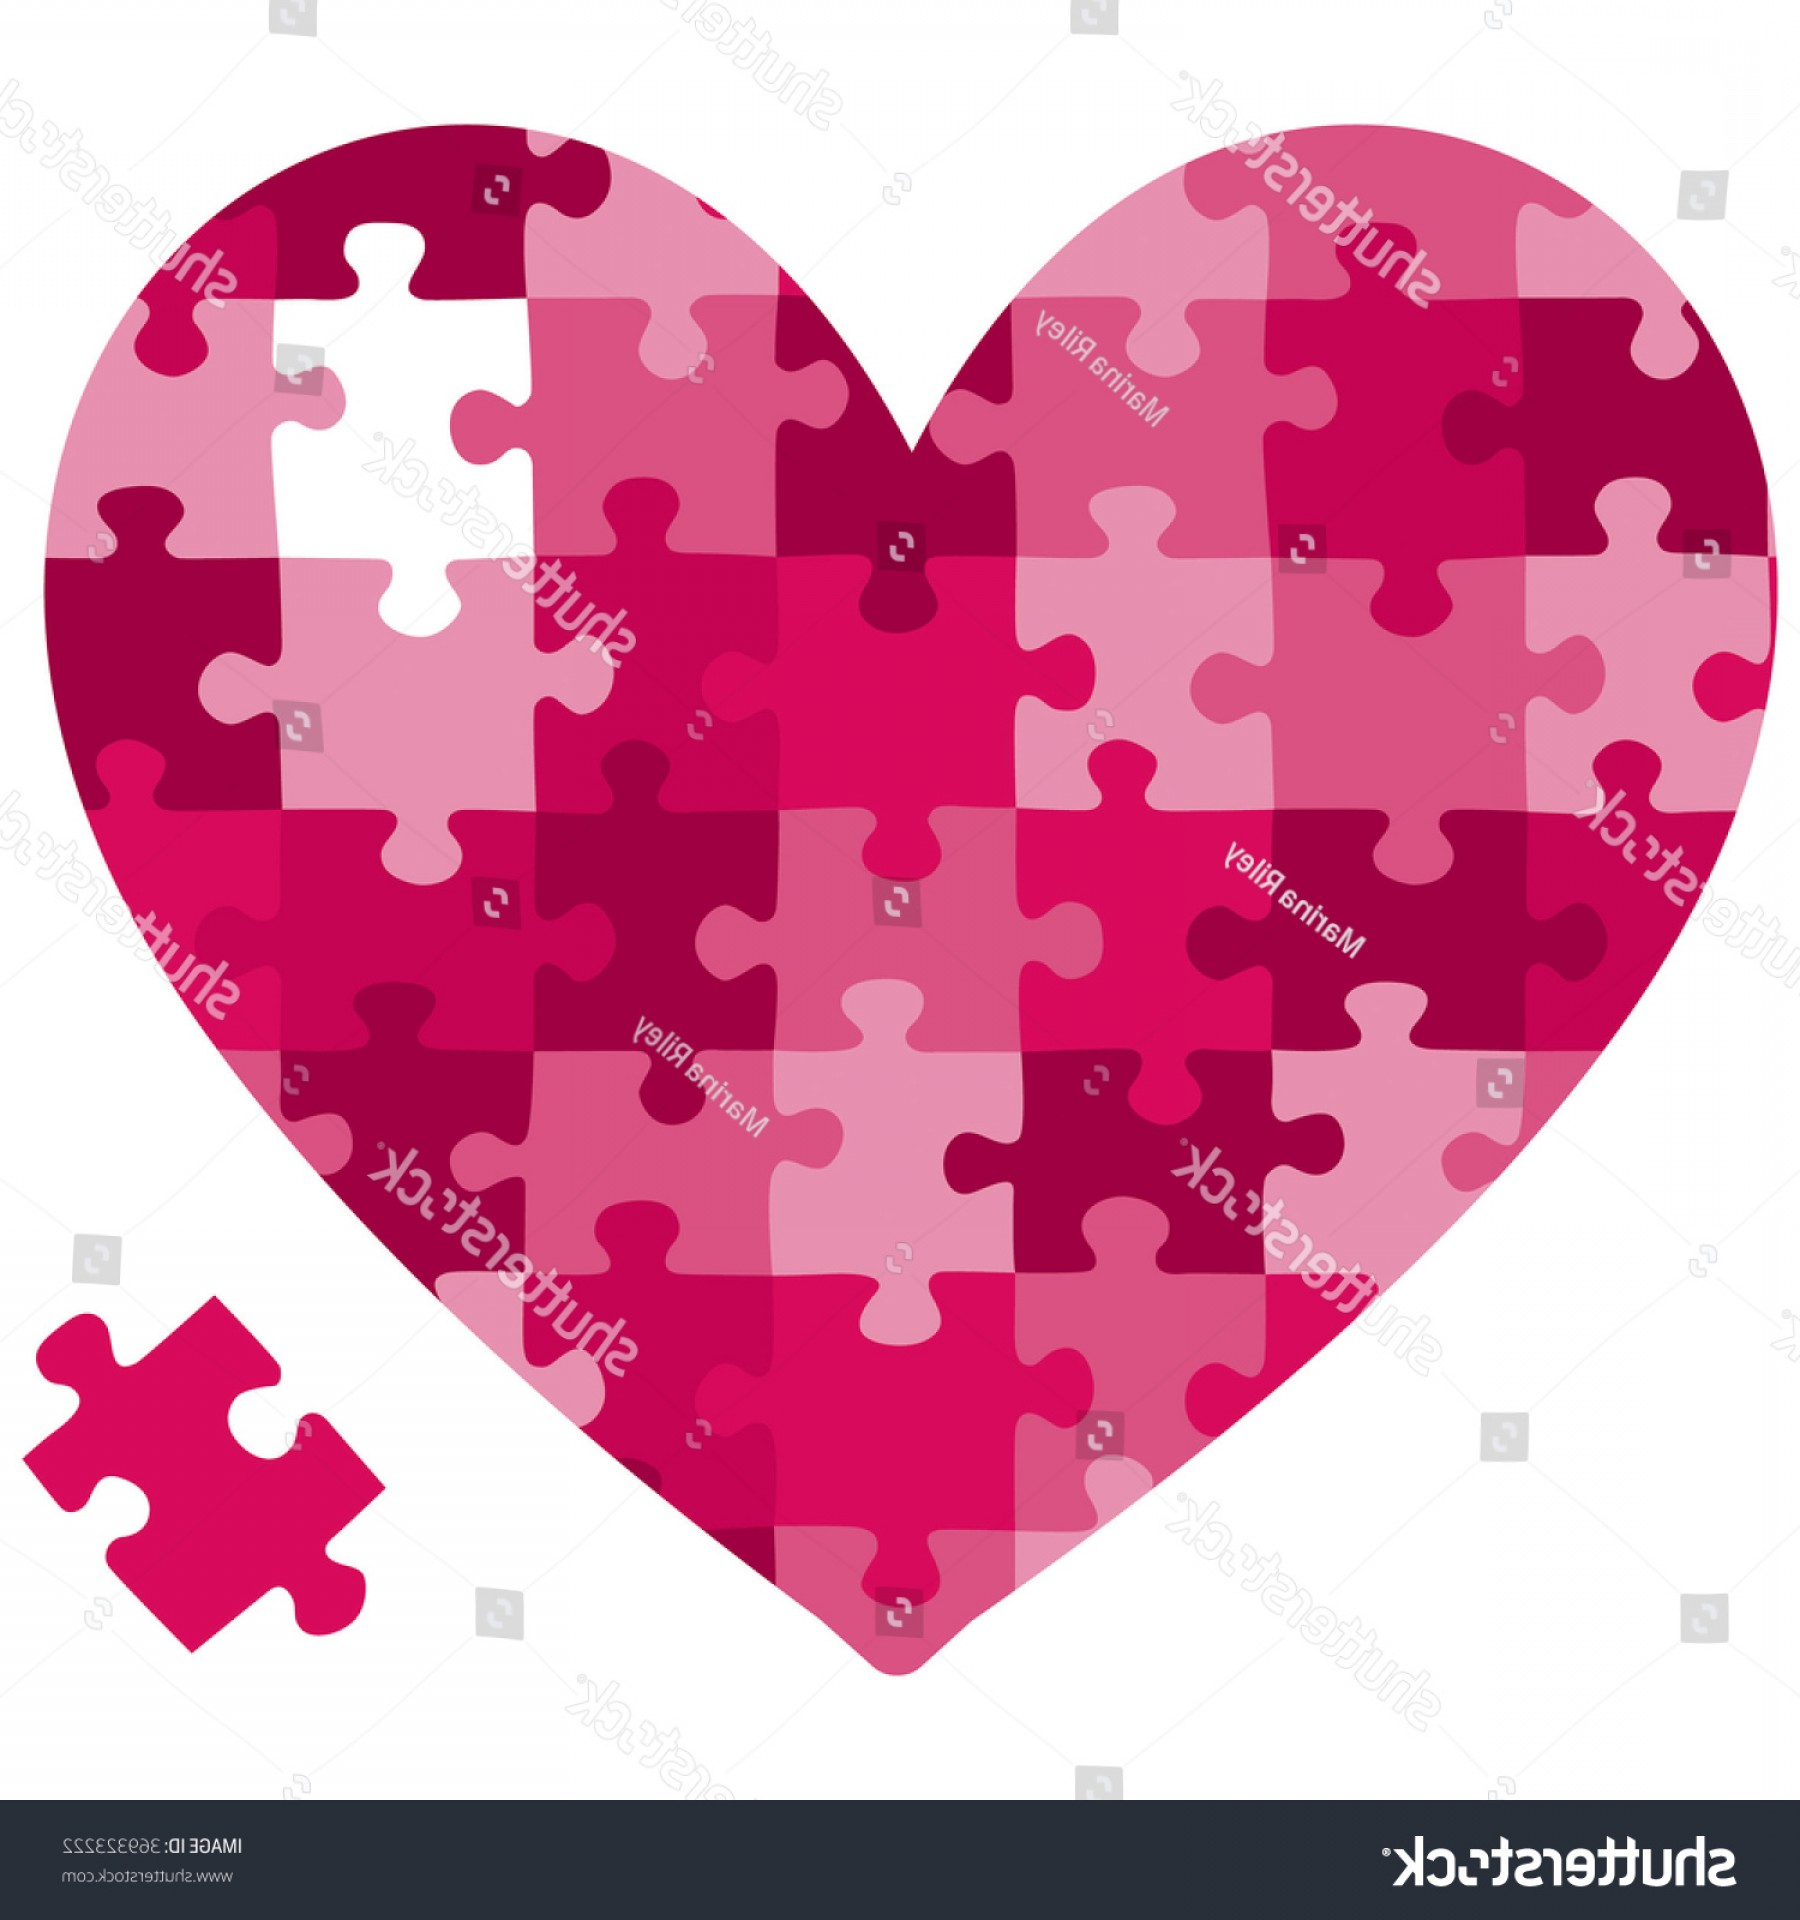 Puzzle In Vector Format: Heart Jigsaw Puzzle Vector Format